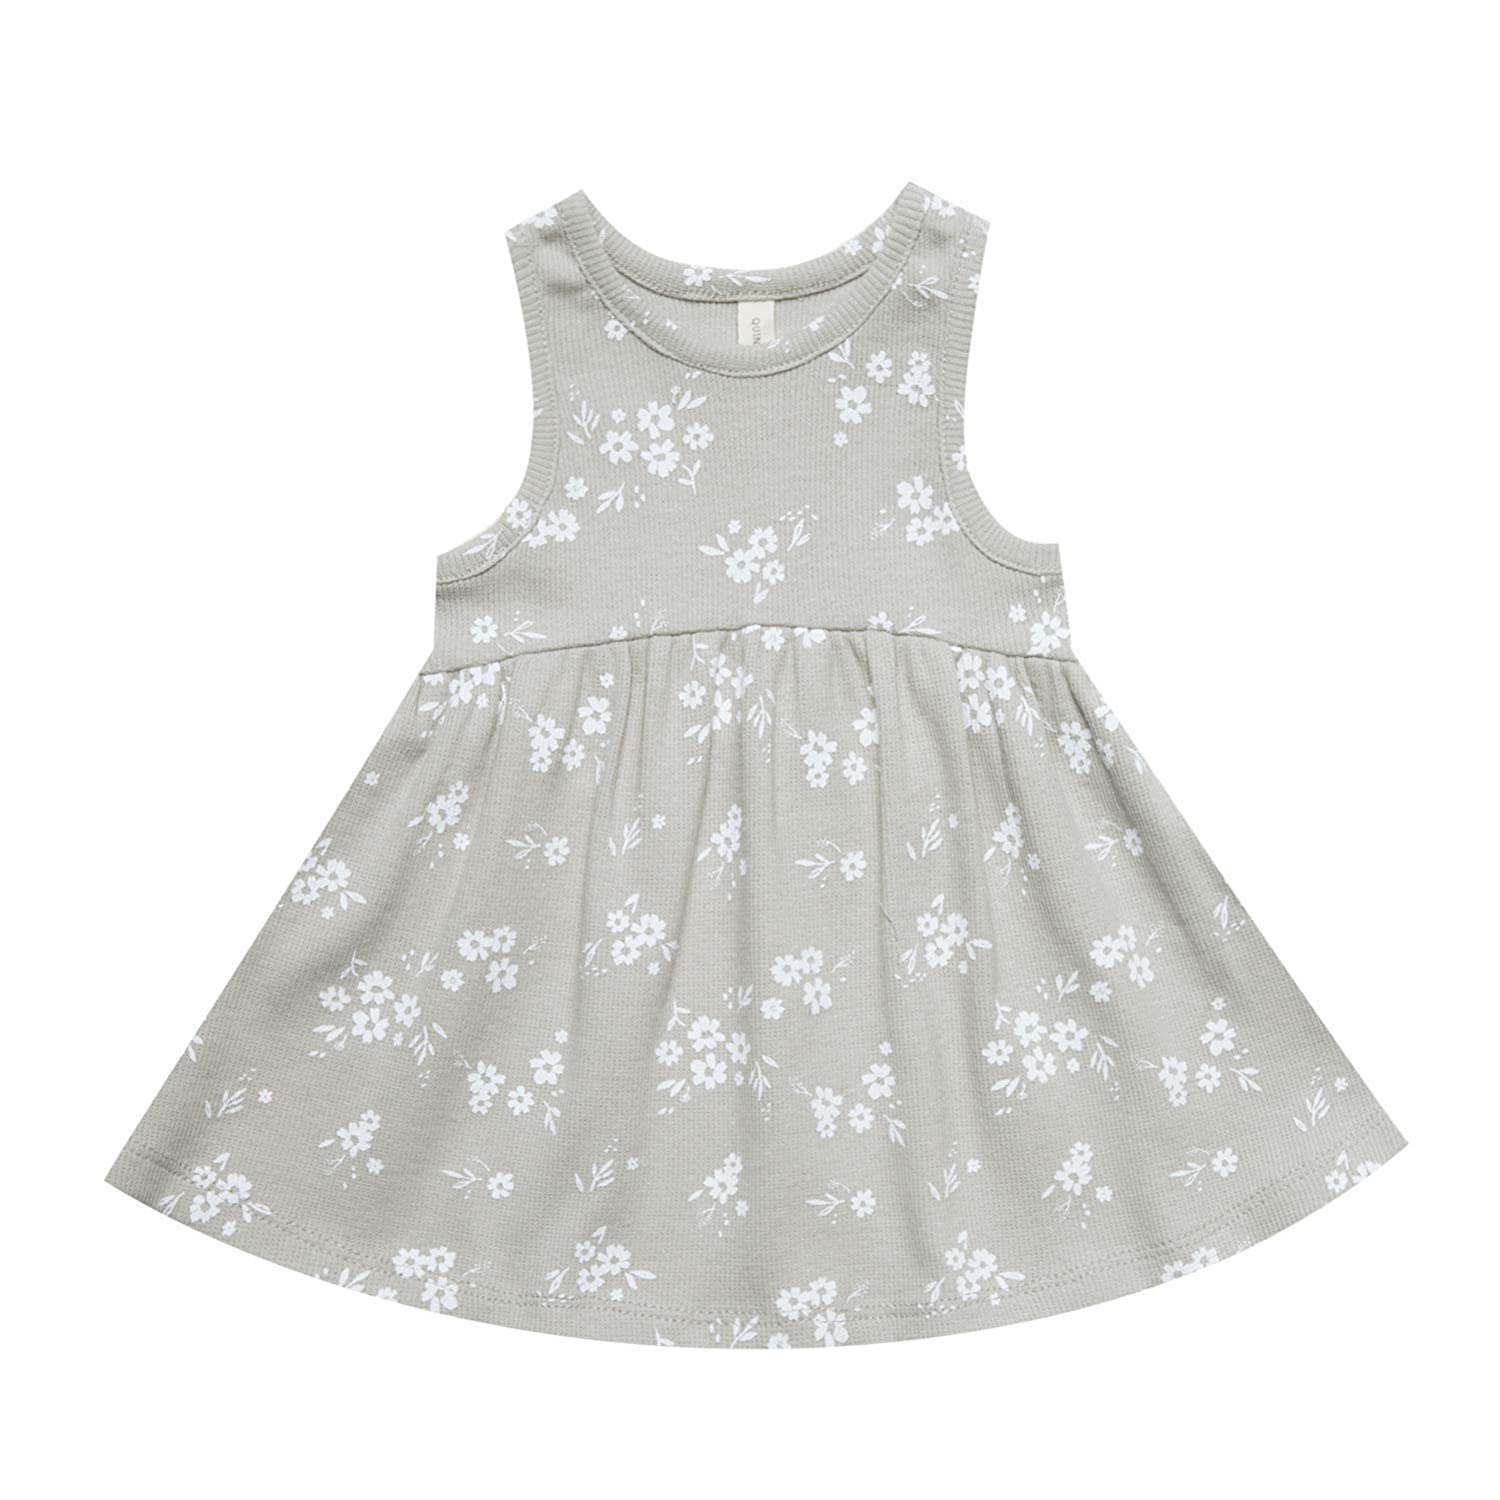 QUINCY MAE ASH 3-6 Months Ribbed Tank Dress